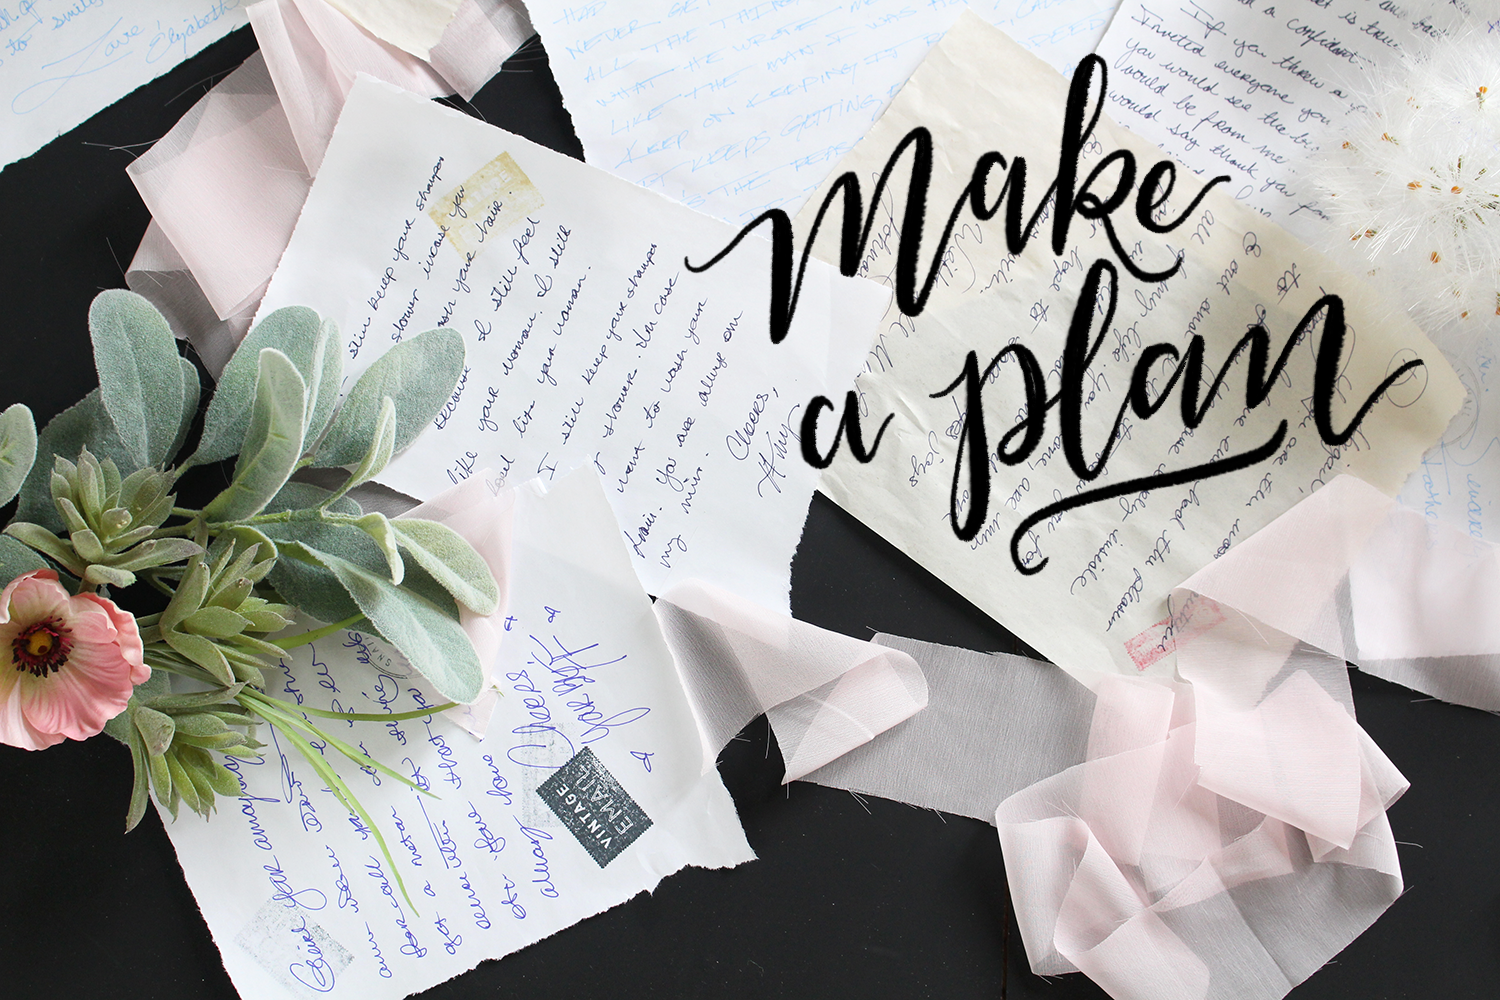 Tip 1: for sending more letters and snail mail- Make a plan